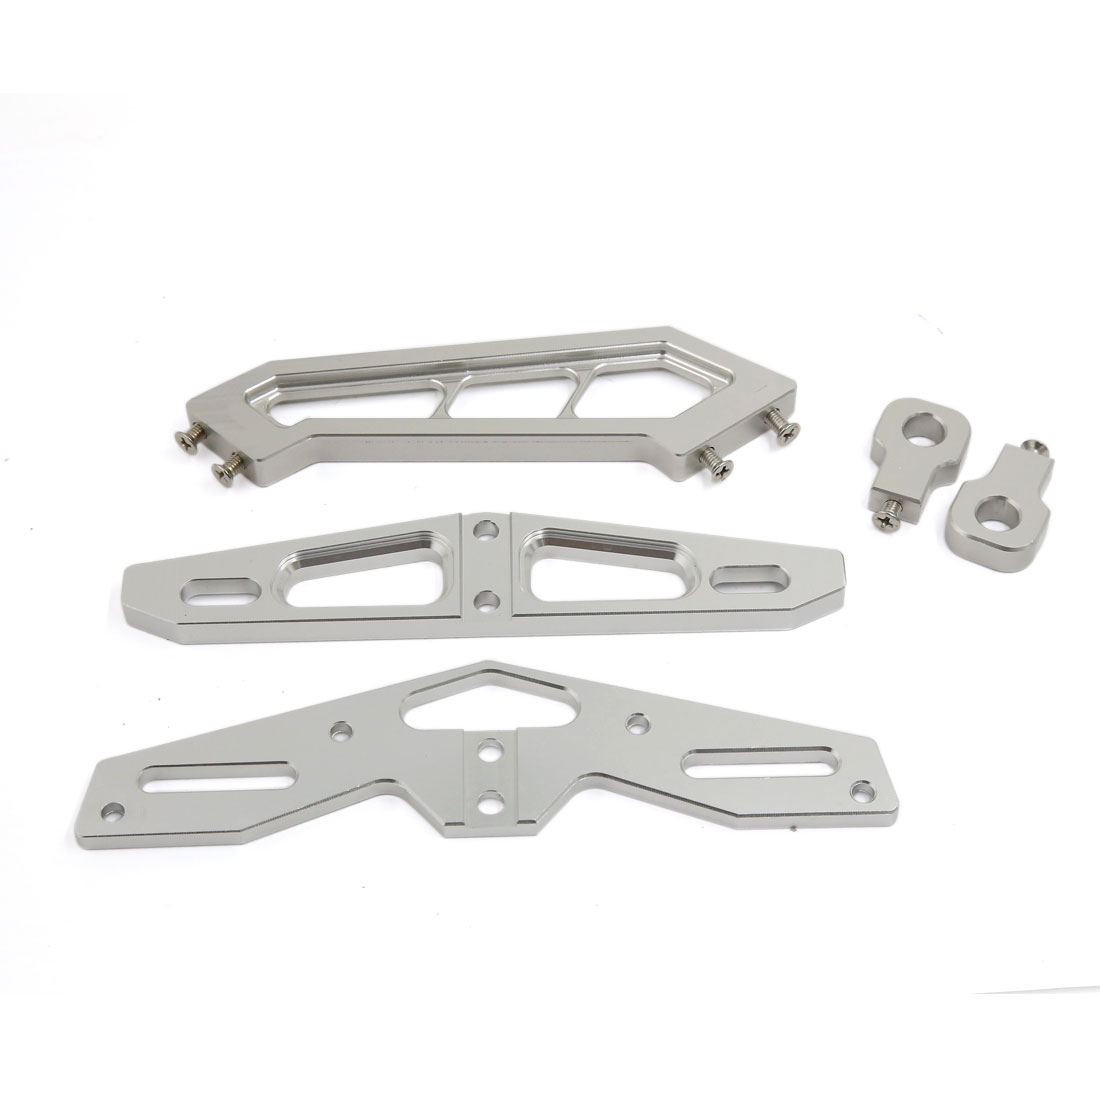 Silver Tone CNC Aluminum Alloy Racing Motorcycle Tail License Plate Frame Support Bracket